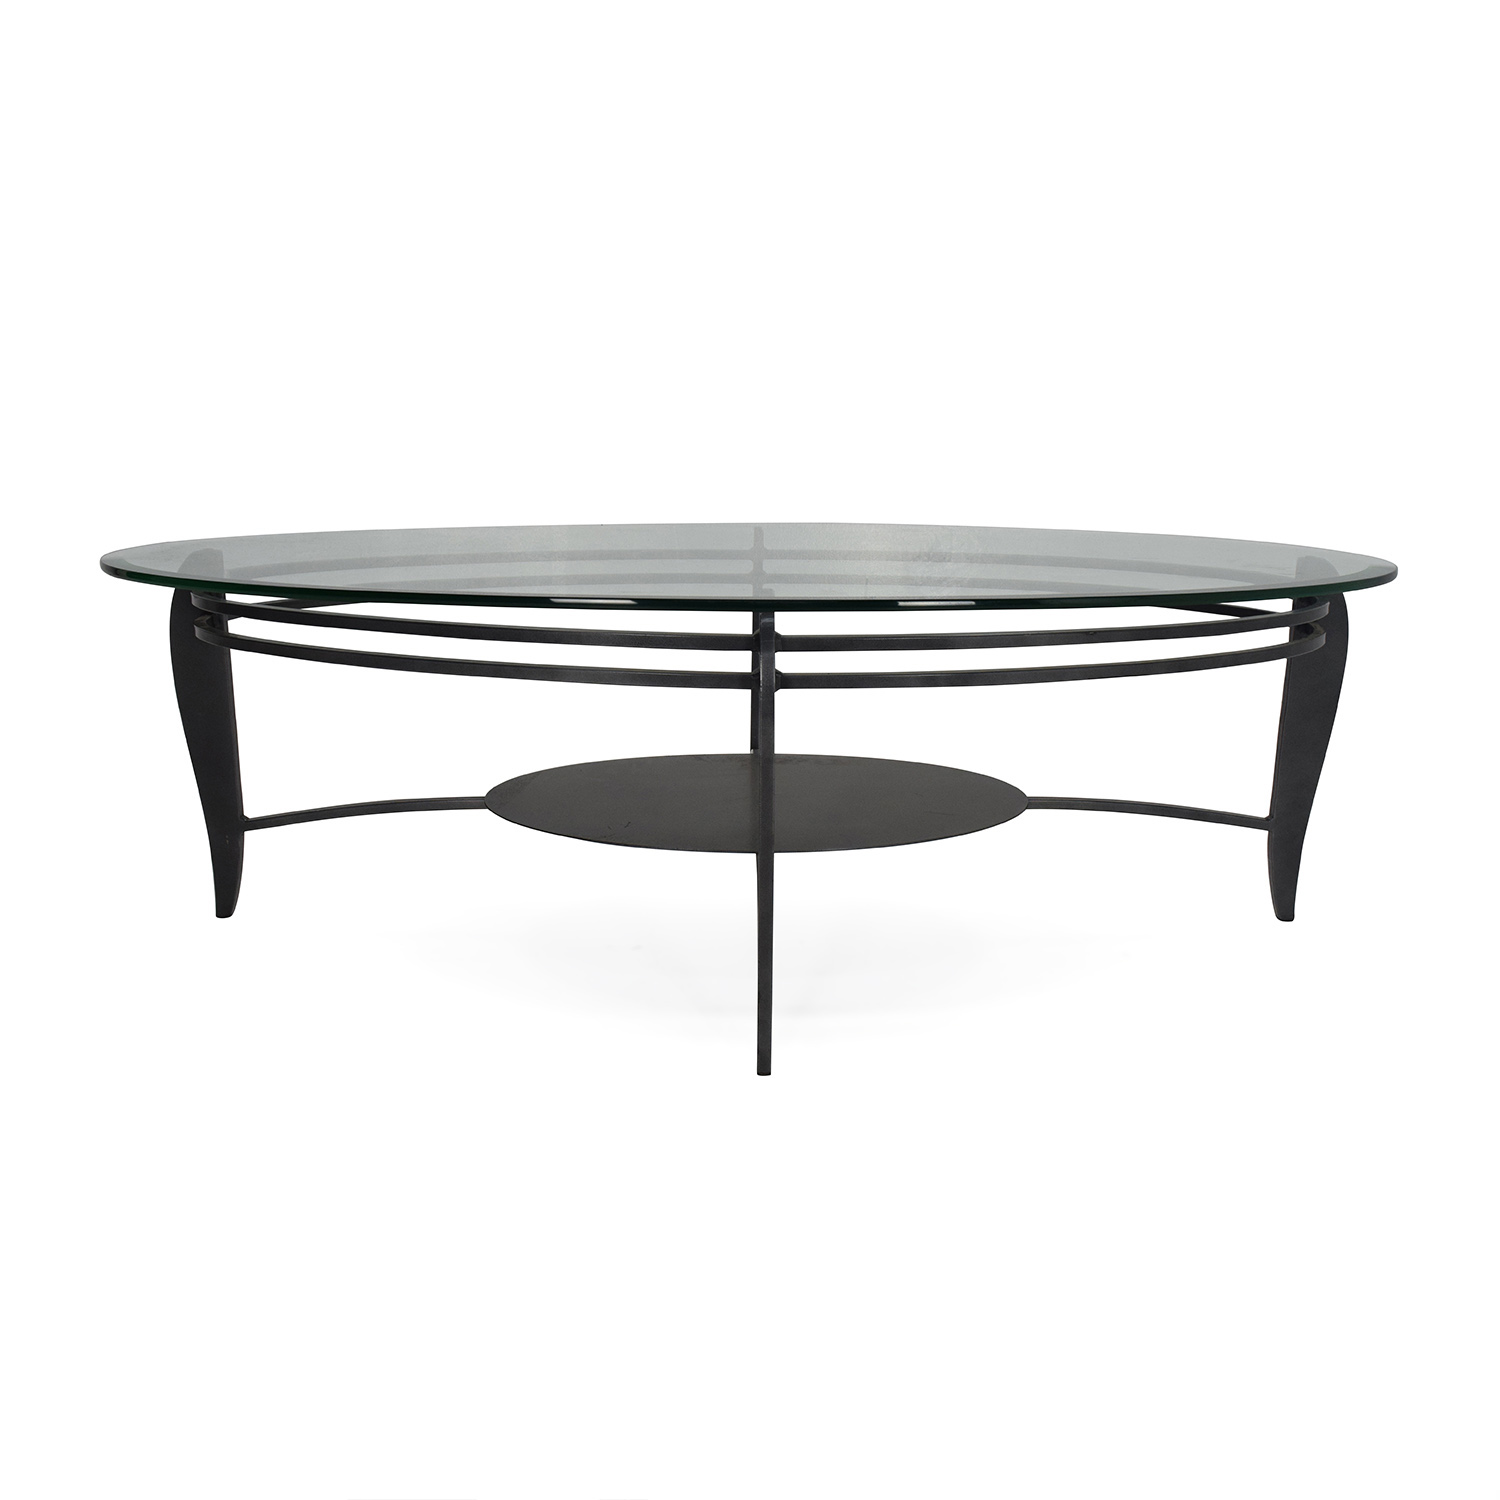 60% OFF West Elm West Elm Wood and Metal Coffee Table Tables